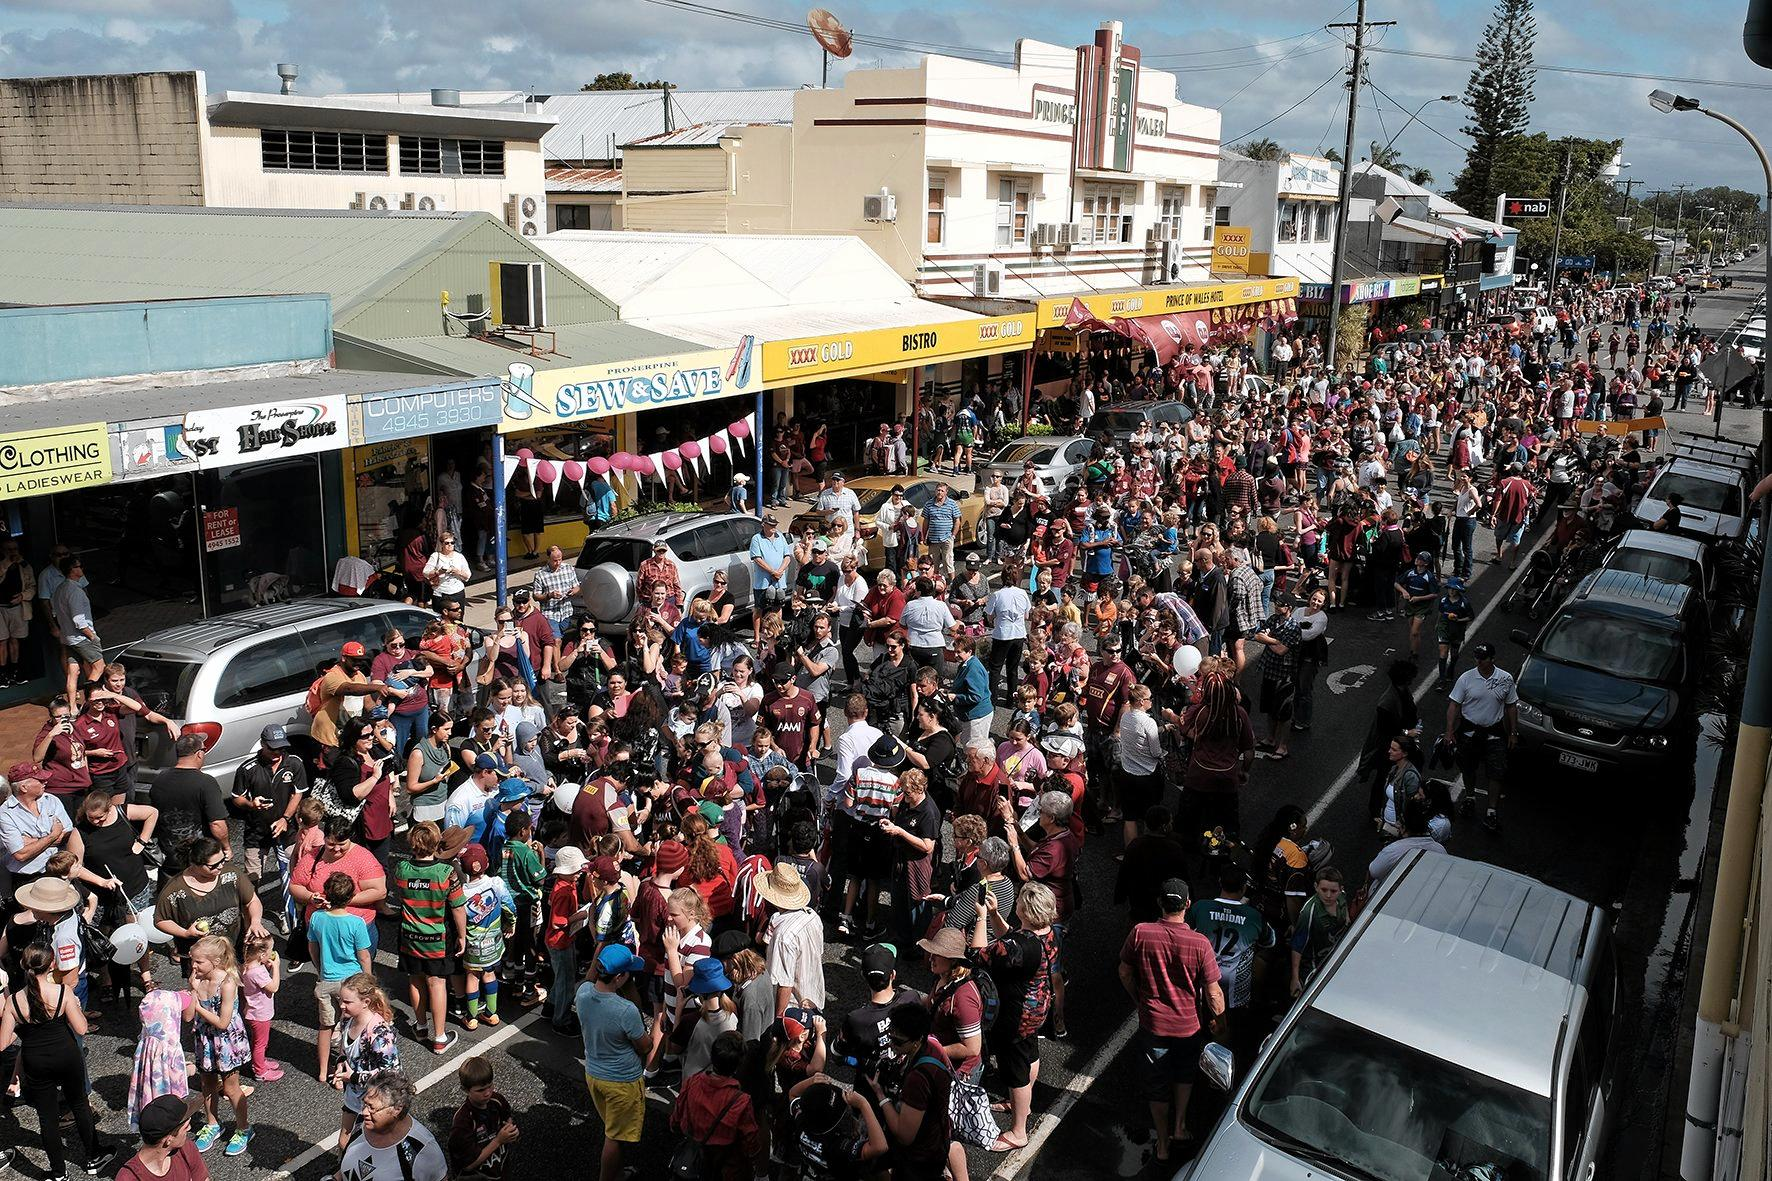 A sea of maroon ran through Proserpine's Main Street for Queensland's regional Fan Day in Proserpine.